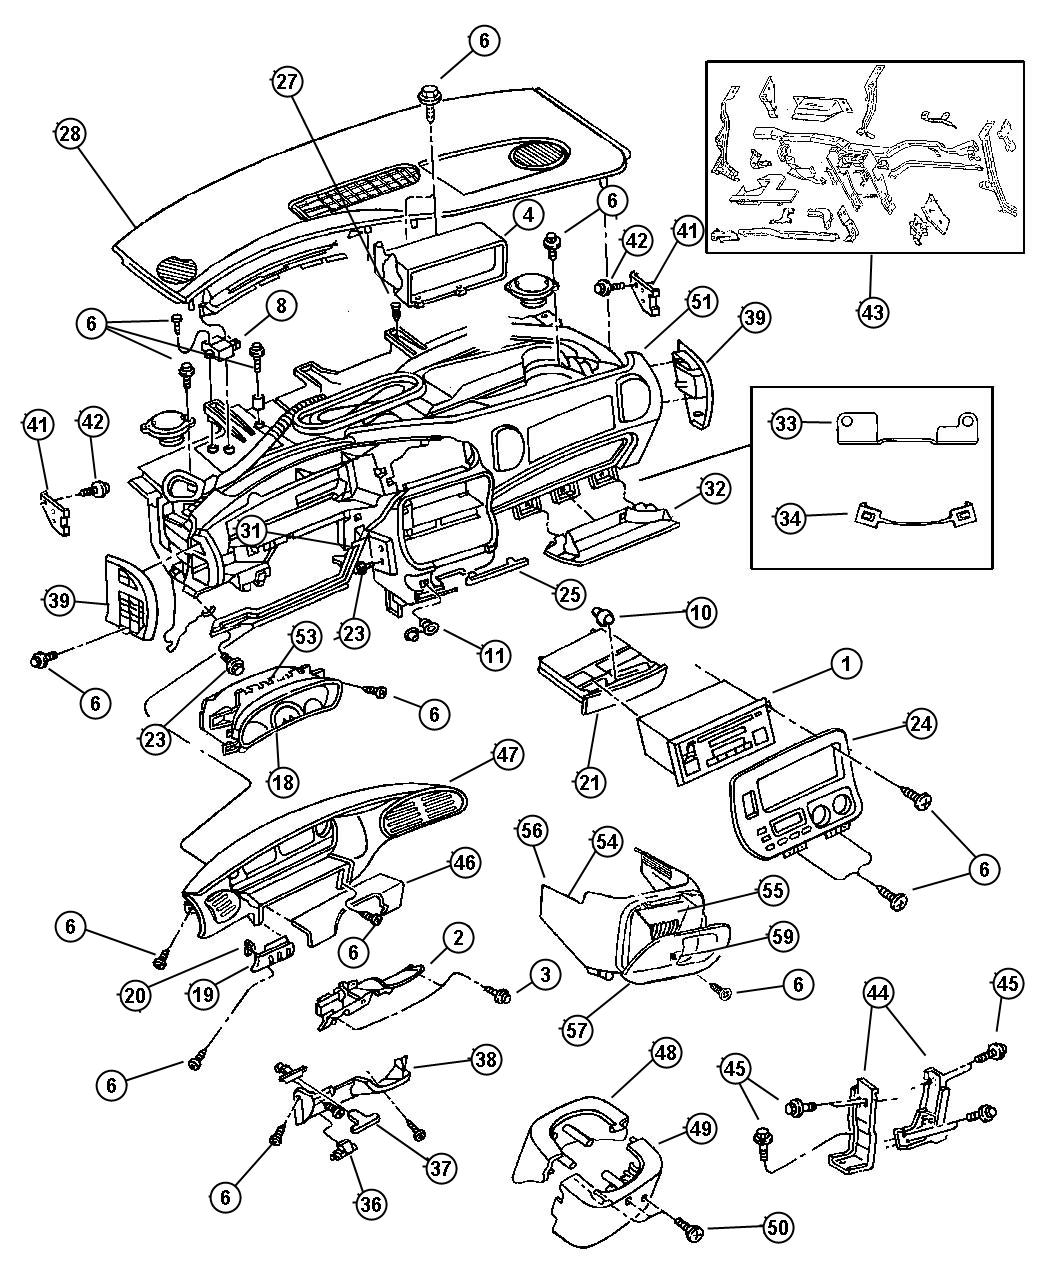 Chrysler 300 Engine Diagram Wiring Library Town And Country Schematics Plymouth Voyager Another Blog About U2022 2006 Fuse